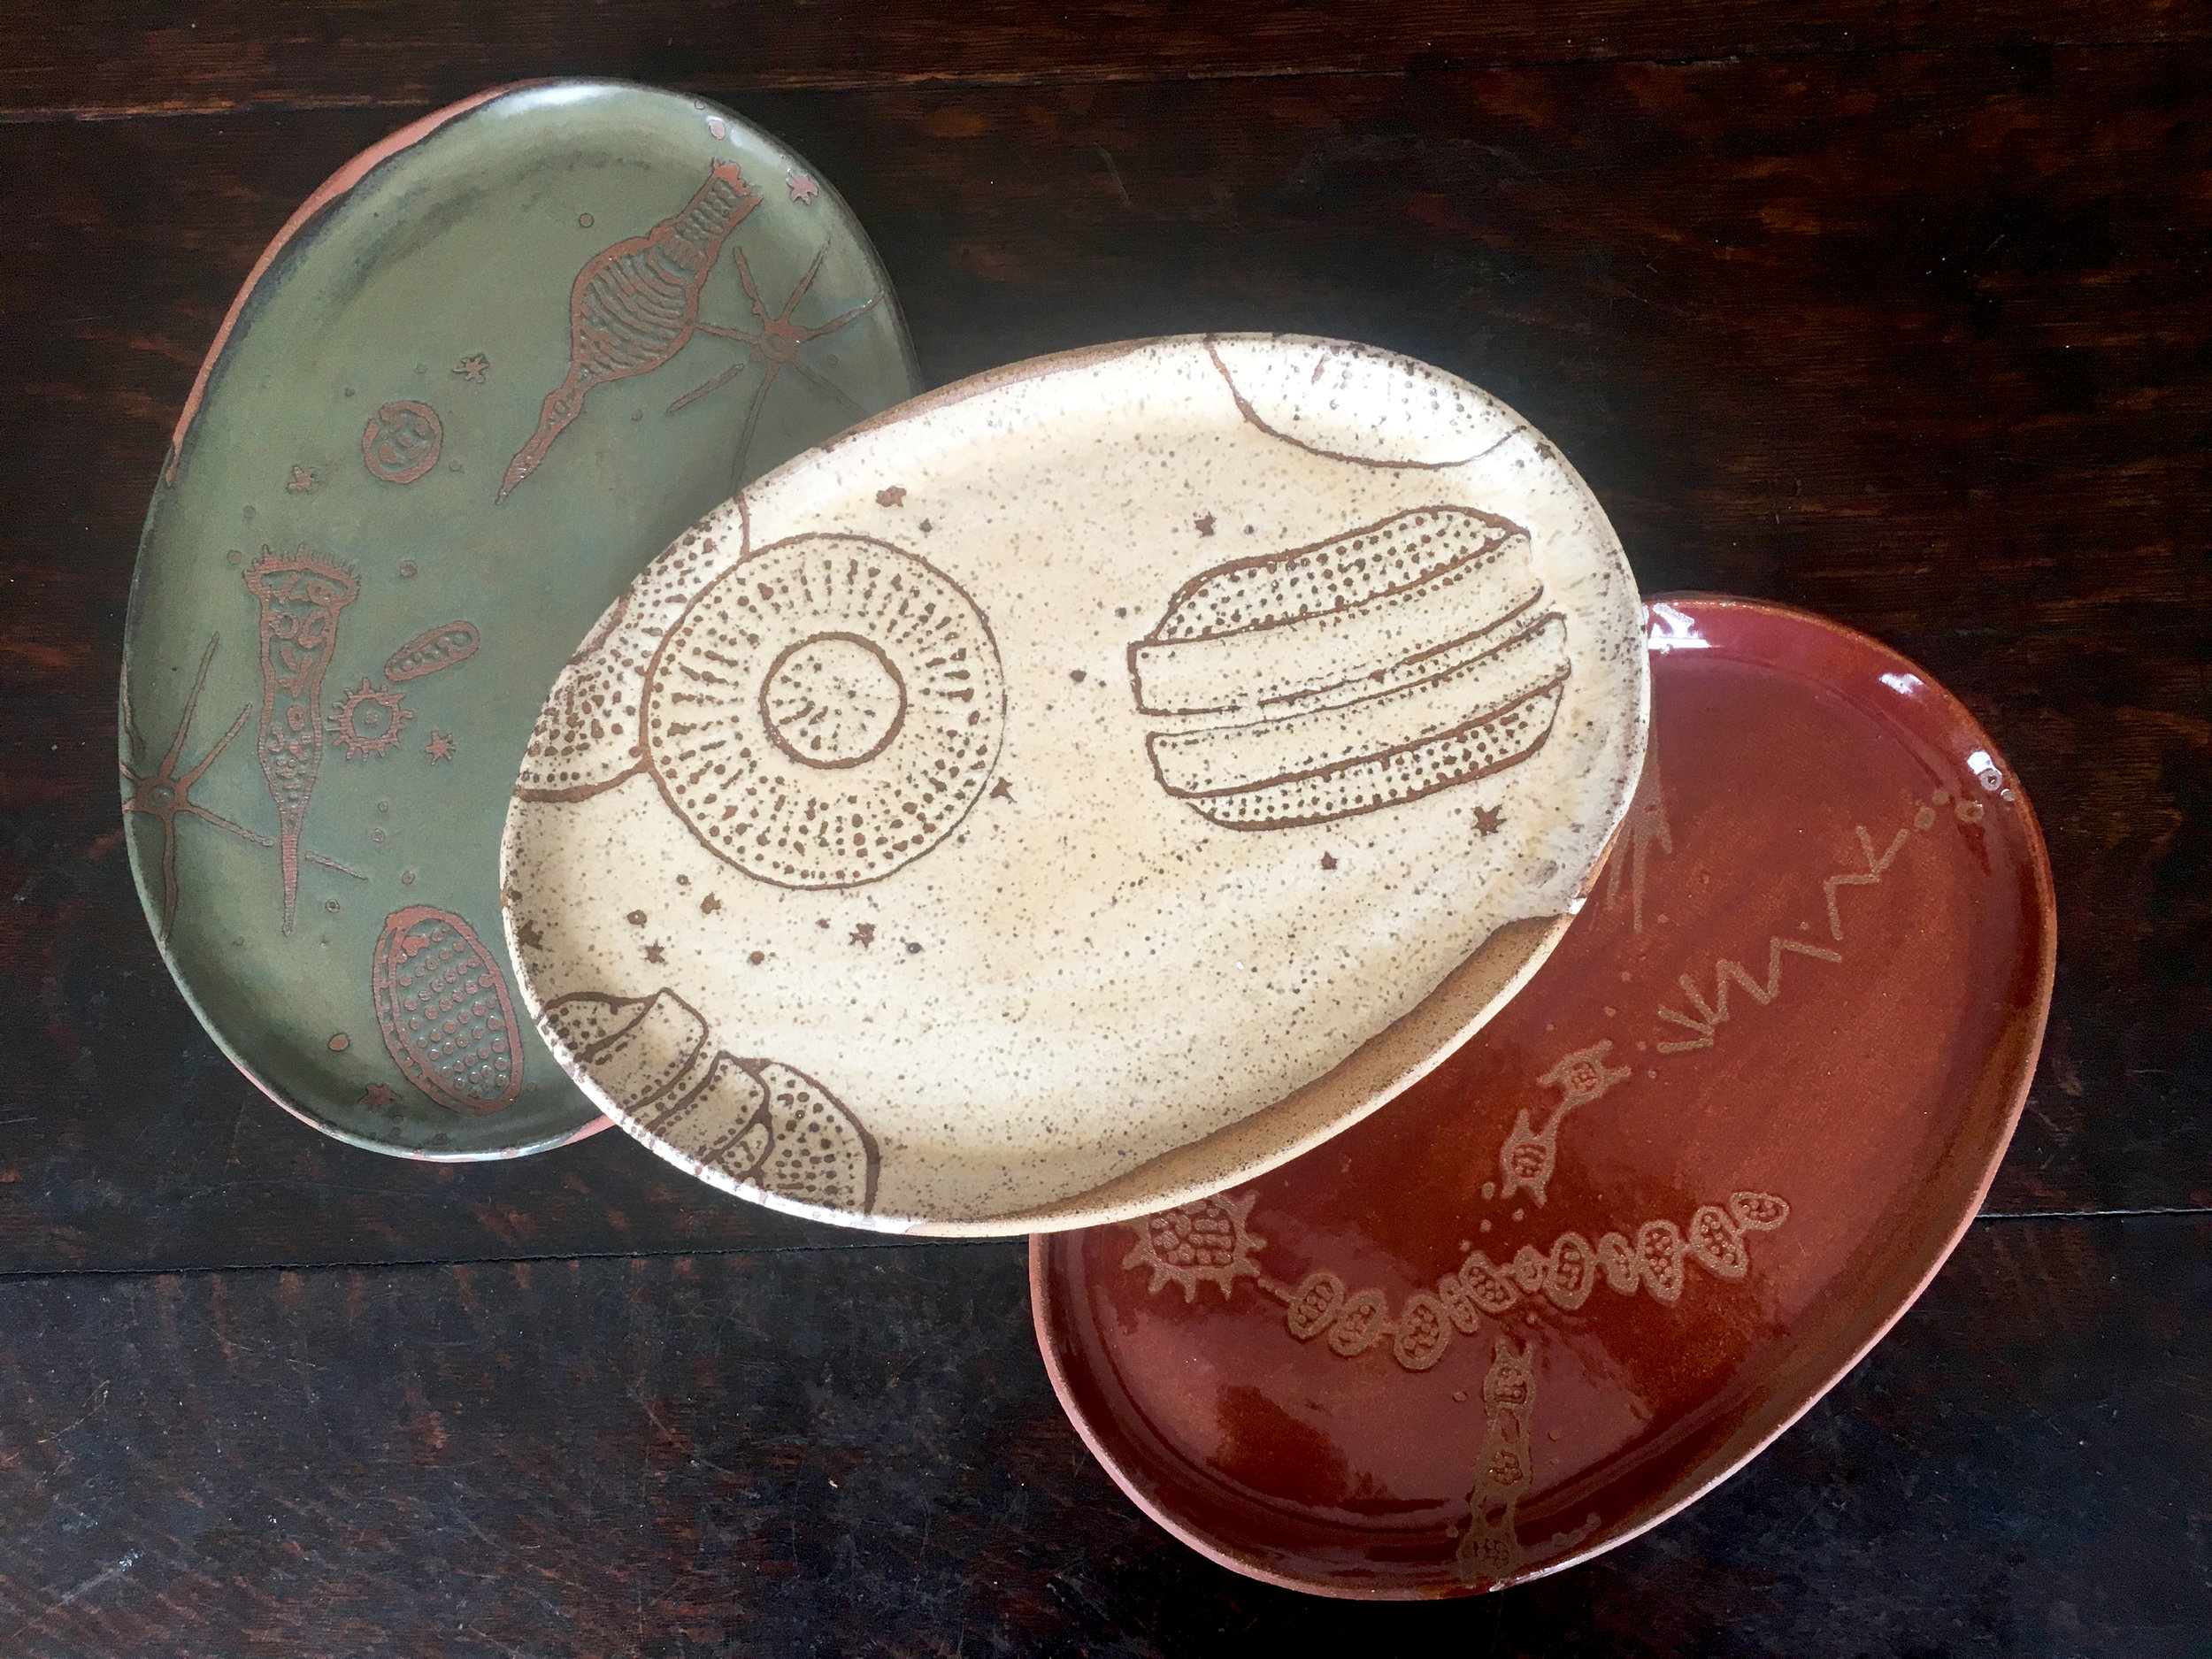 Platters are oval in small, medium & large with a wide rim on the grand platter   Trio in moss on red clay, créme brûlée on speckled clay & plum on red clay